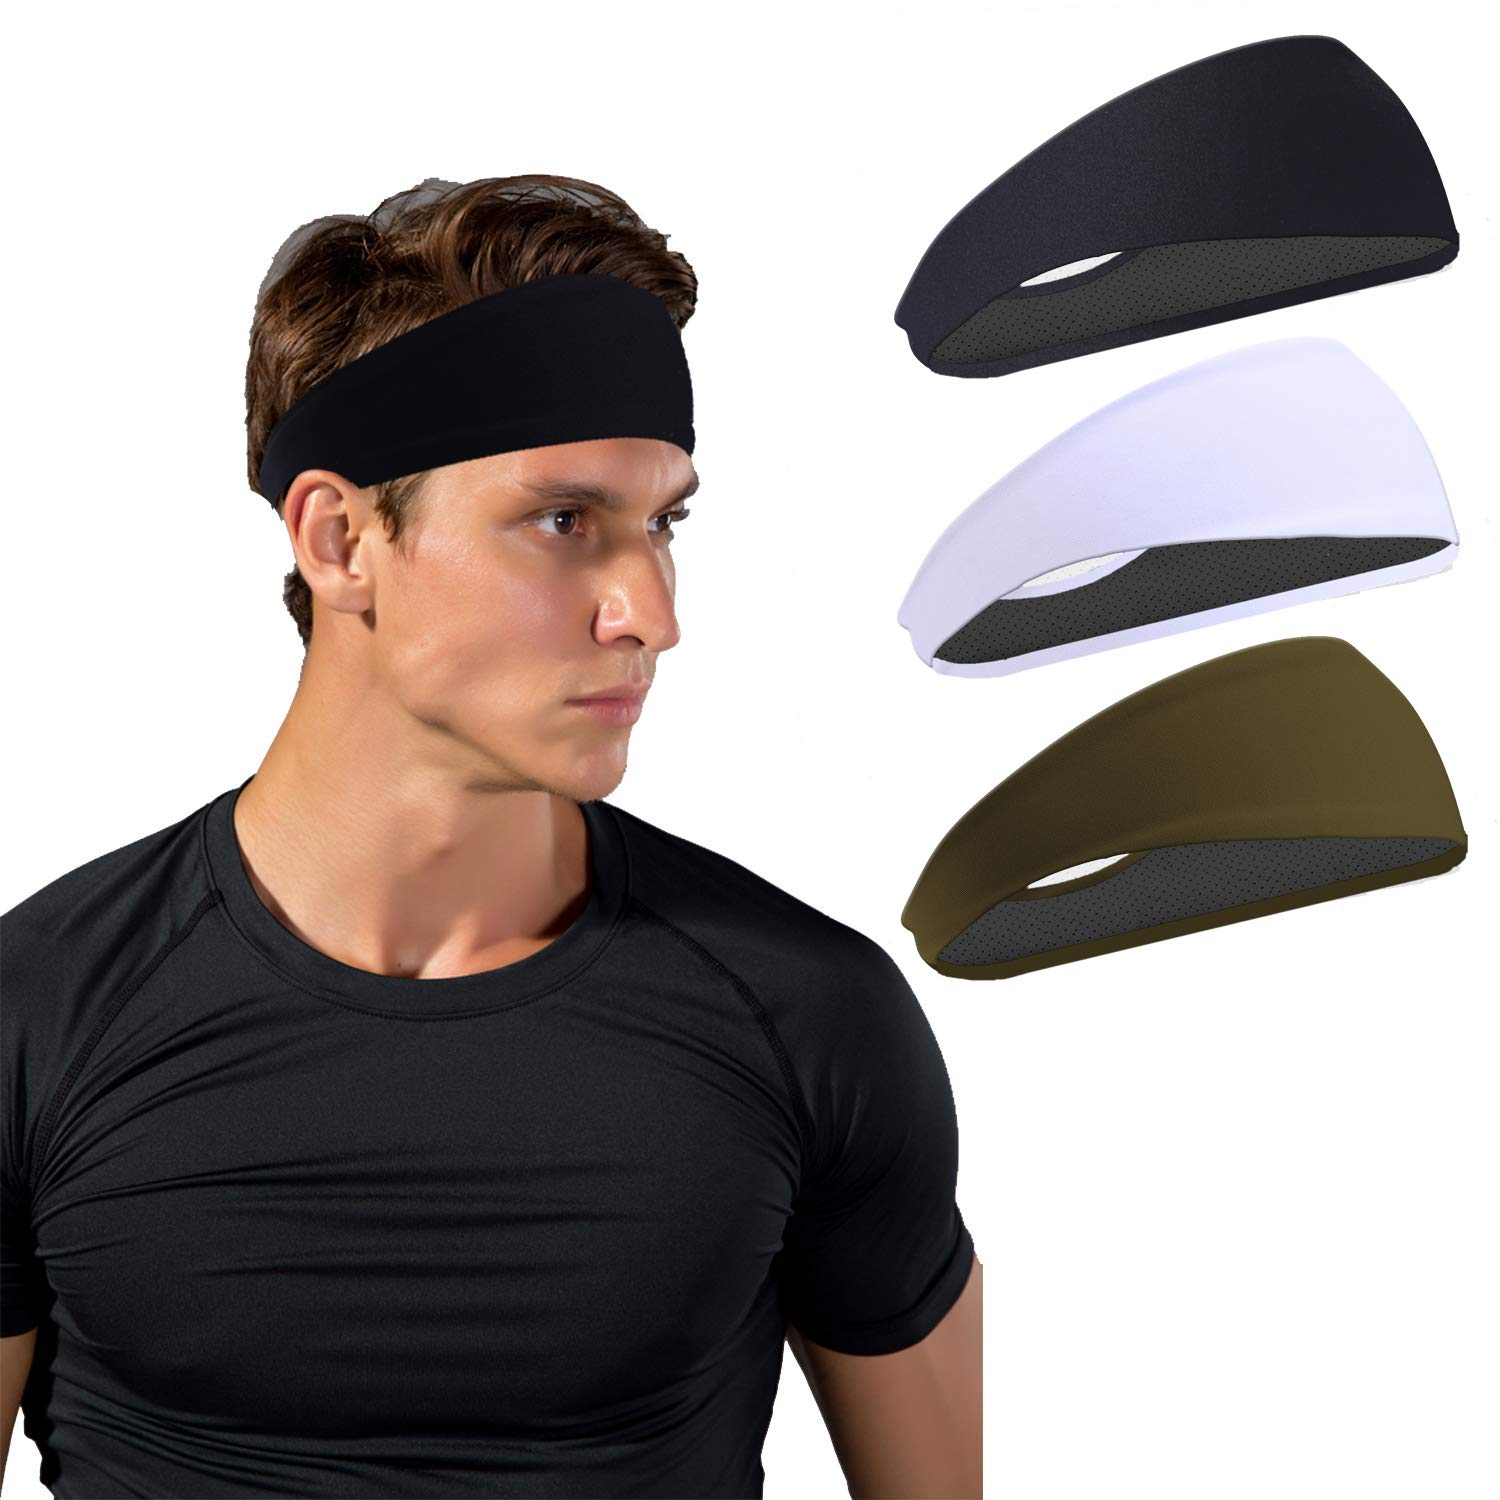 JOEYOUNG Sport Headbands for Men and Women - Mens Headband, Workout Sweatband Headband for Running, Yoga, Fitness, Gym - Performance Stretch/Lightweight (A-3pcs-black+White + Army Green)